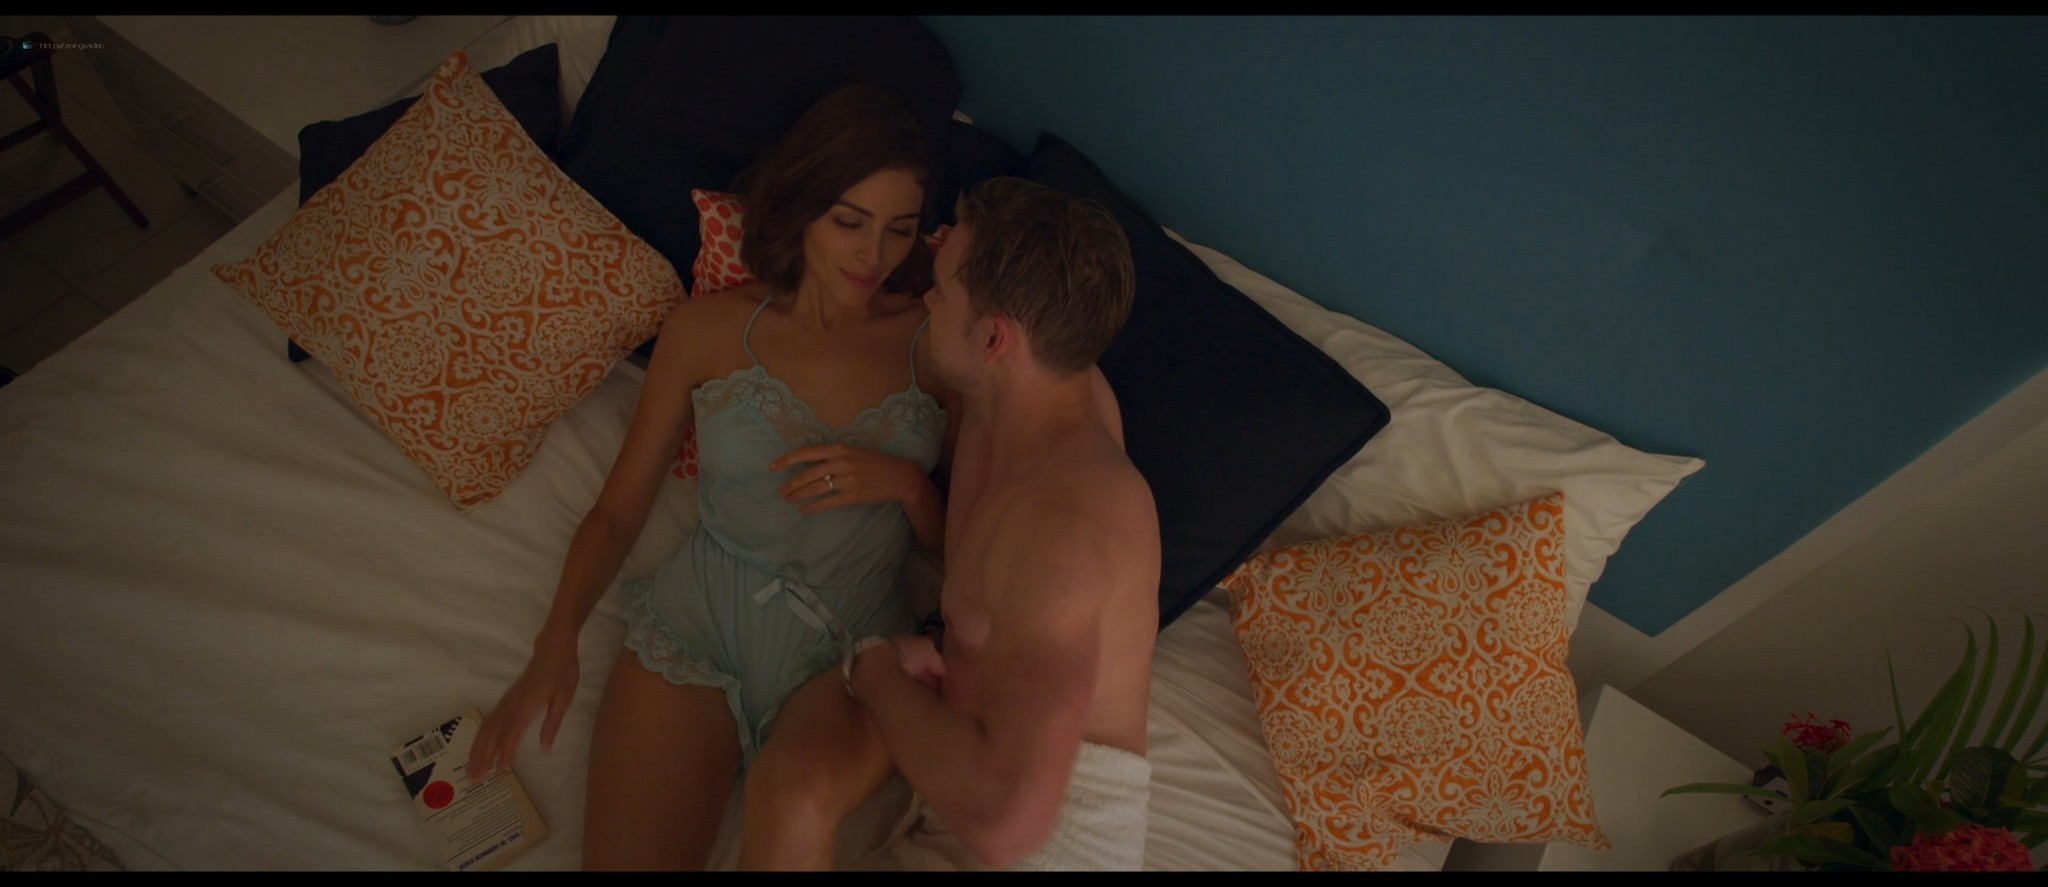 Olivia Culpo hot Adelaide Kane sexy others topless and hot - The Swing of Things (2020) HD 1080p Web (15)